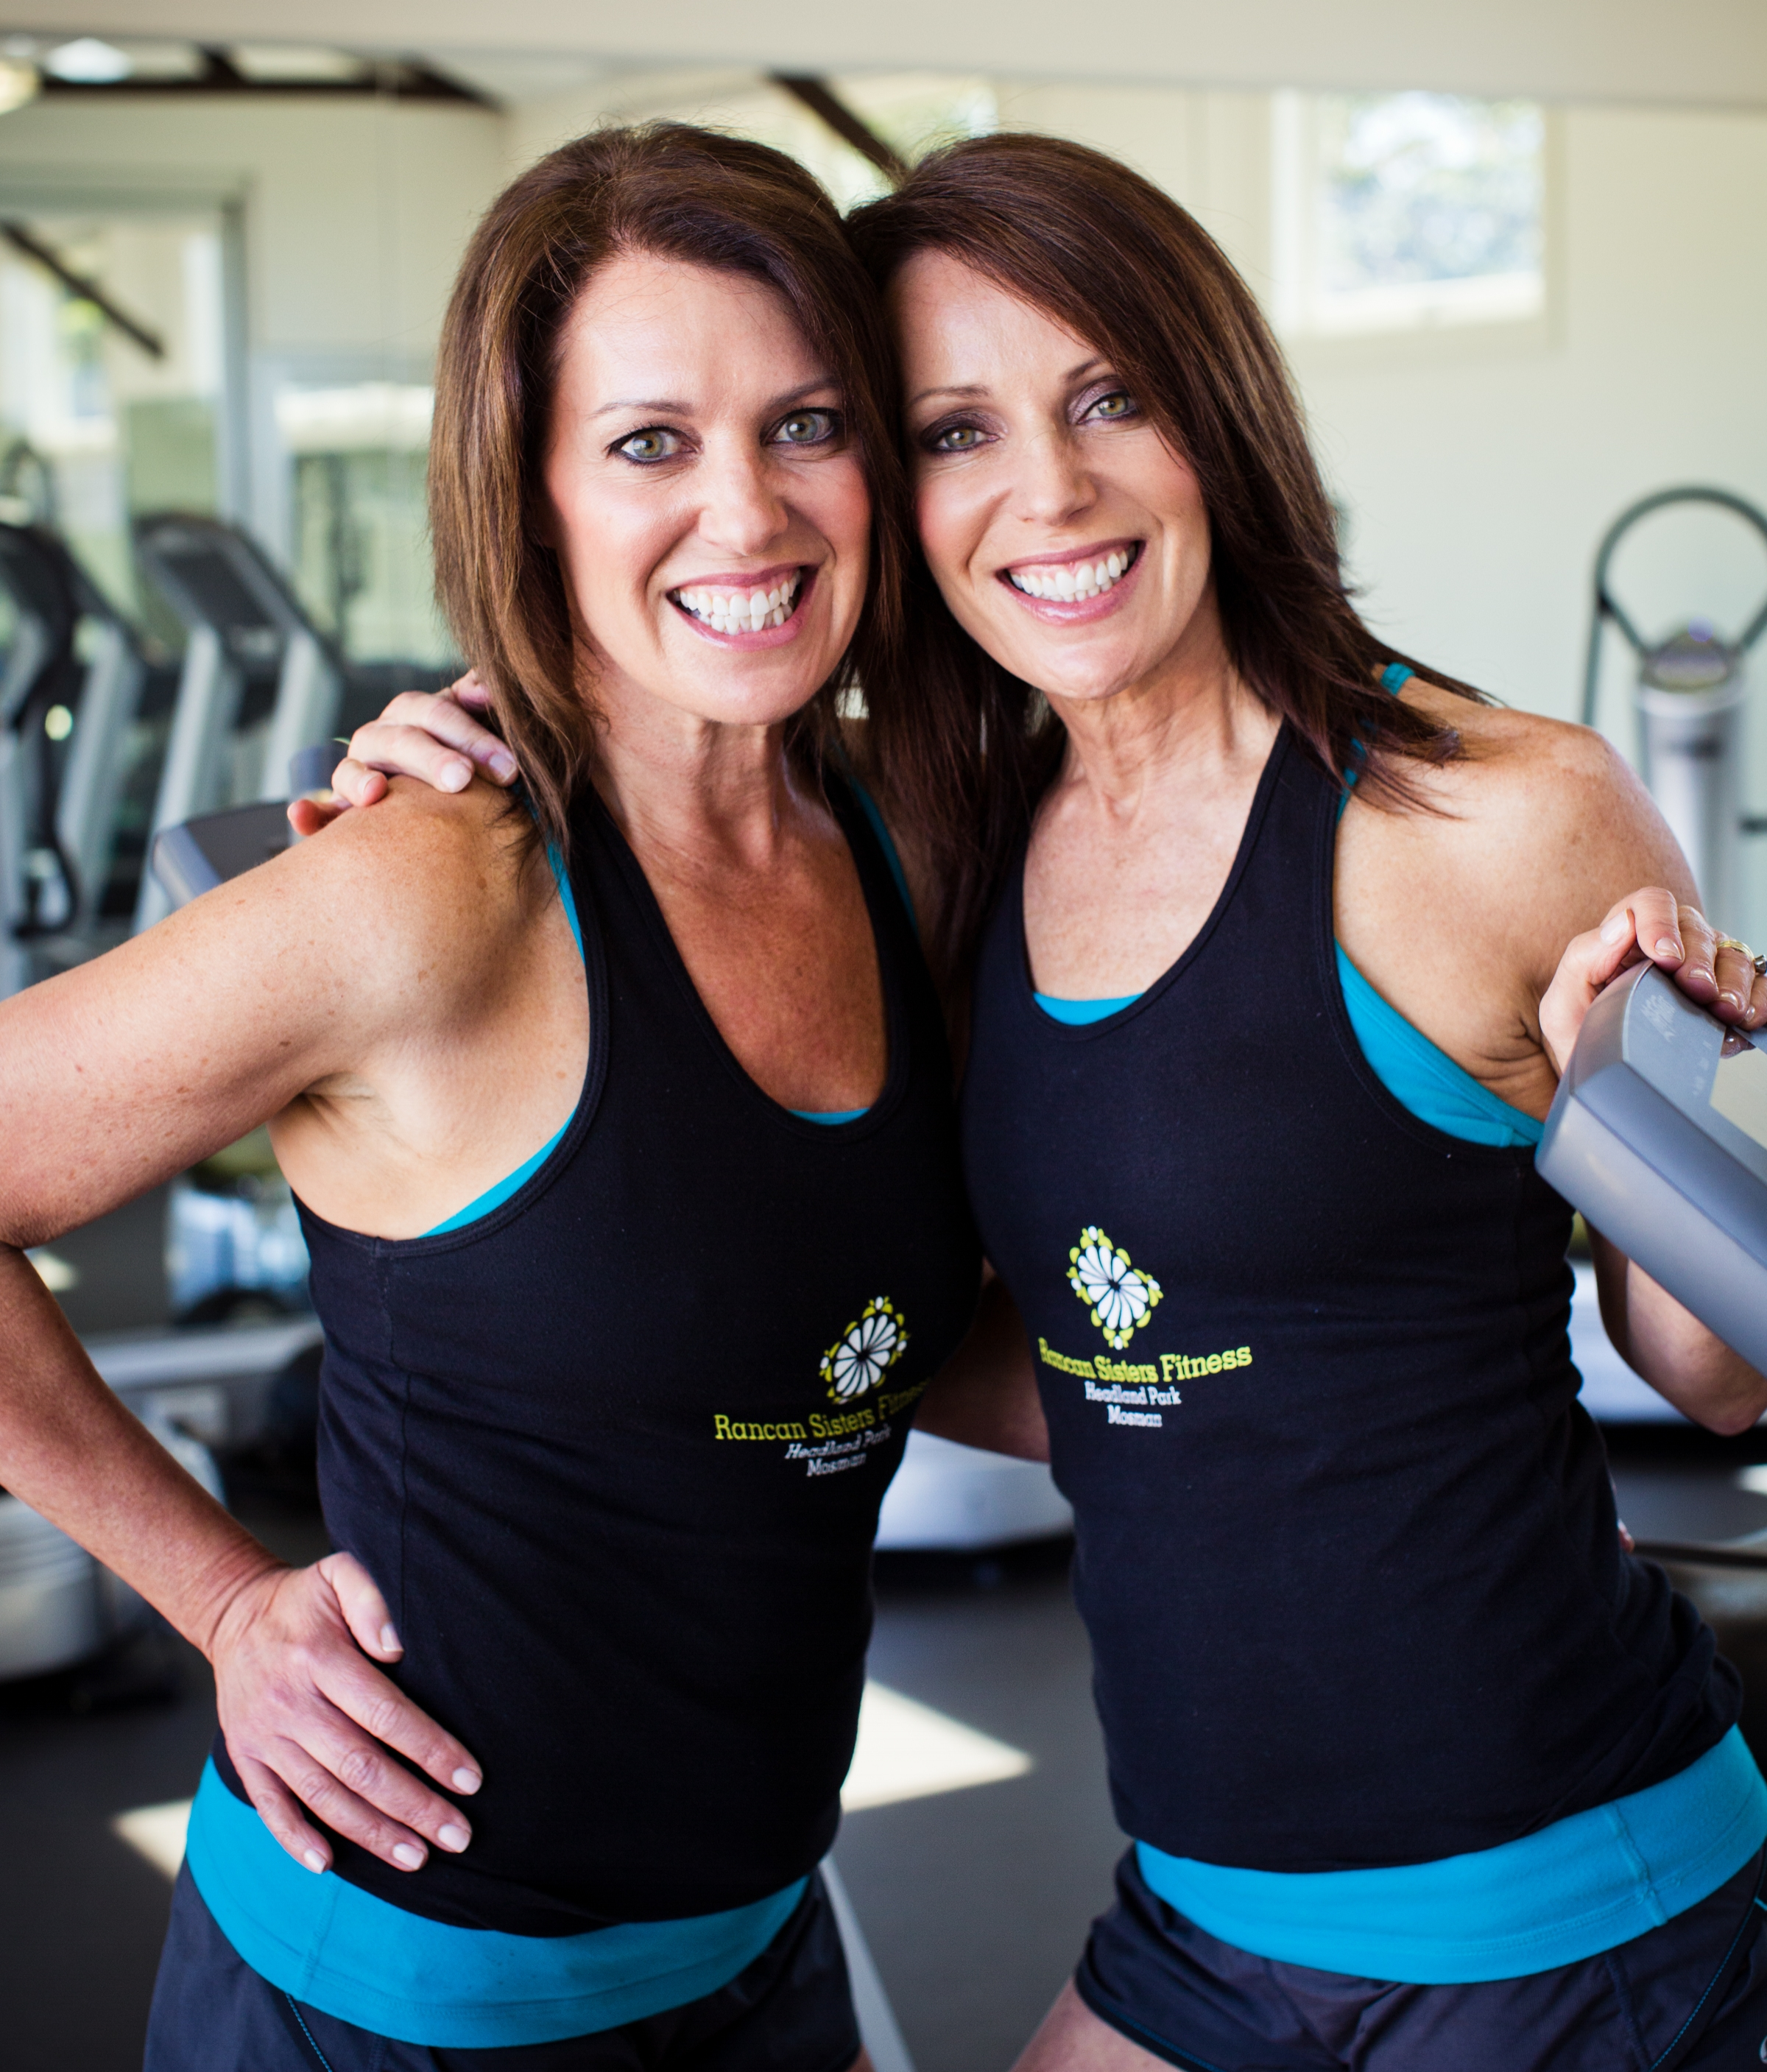 A holistic health approach keeps the Rancan Sisters looking better than ever.  Image: Graham Monro/  gmphotographics